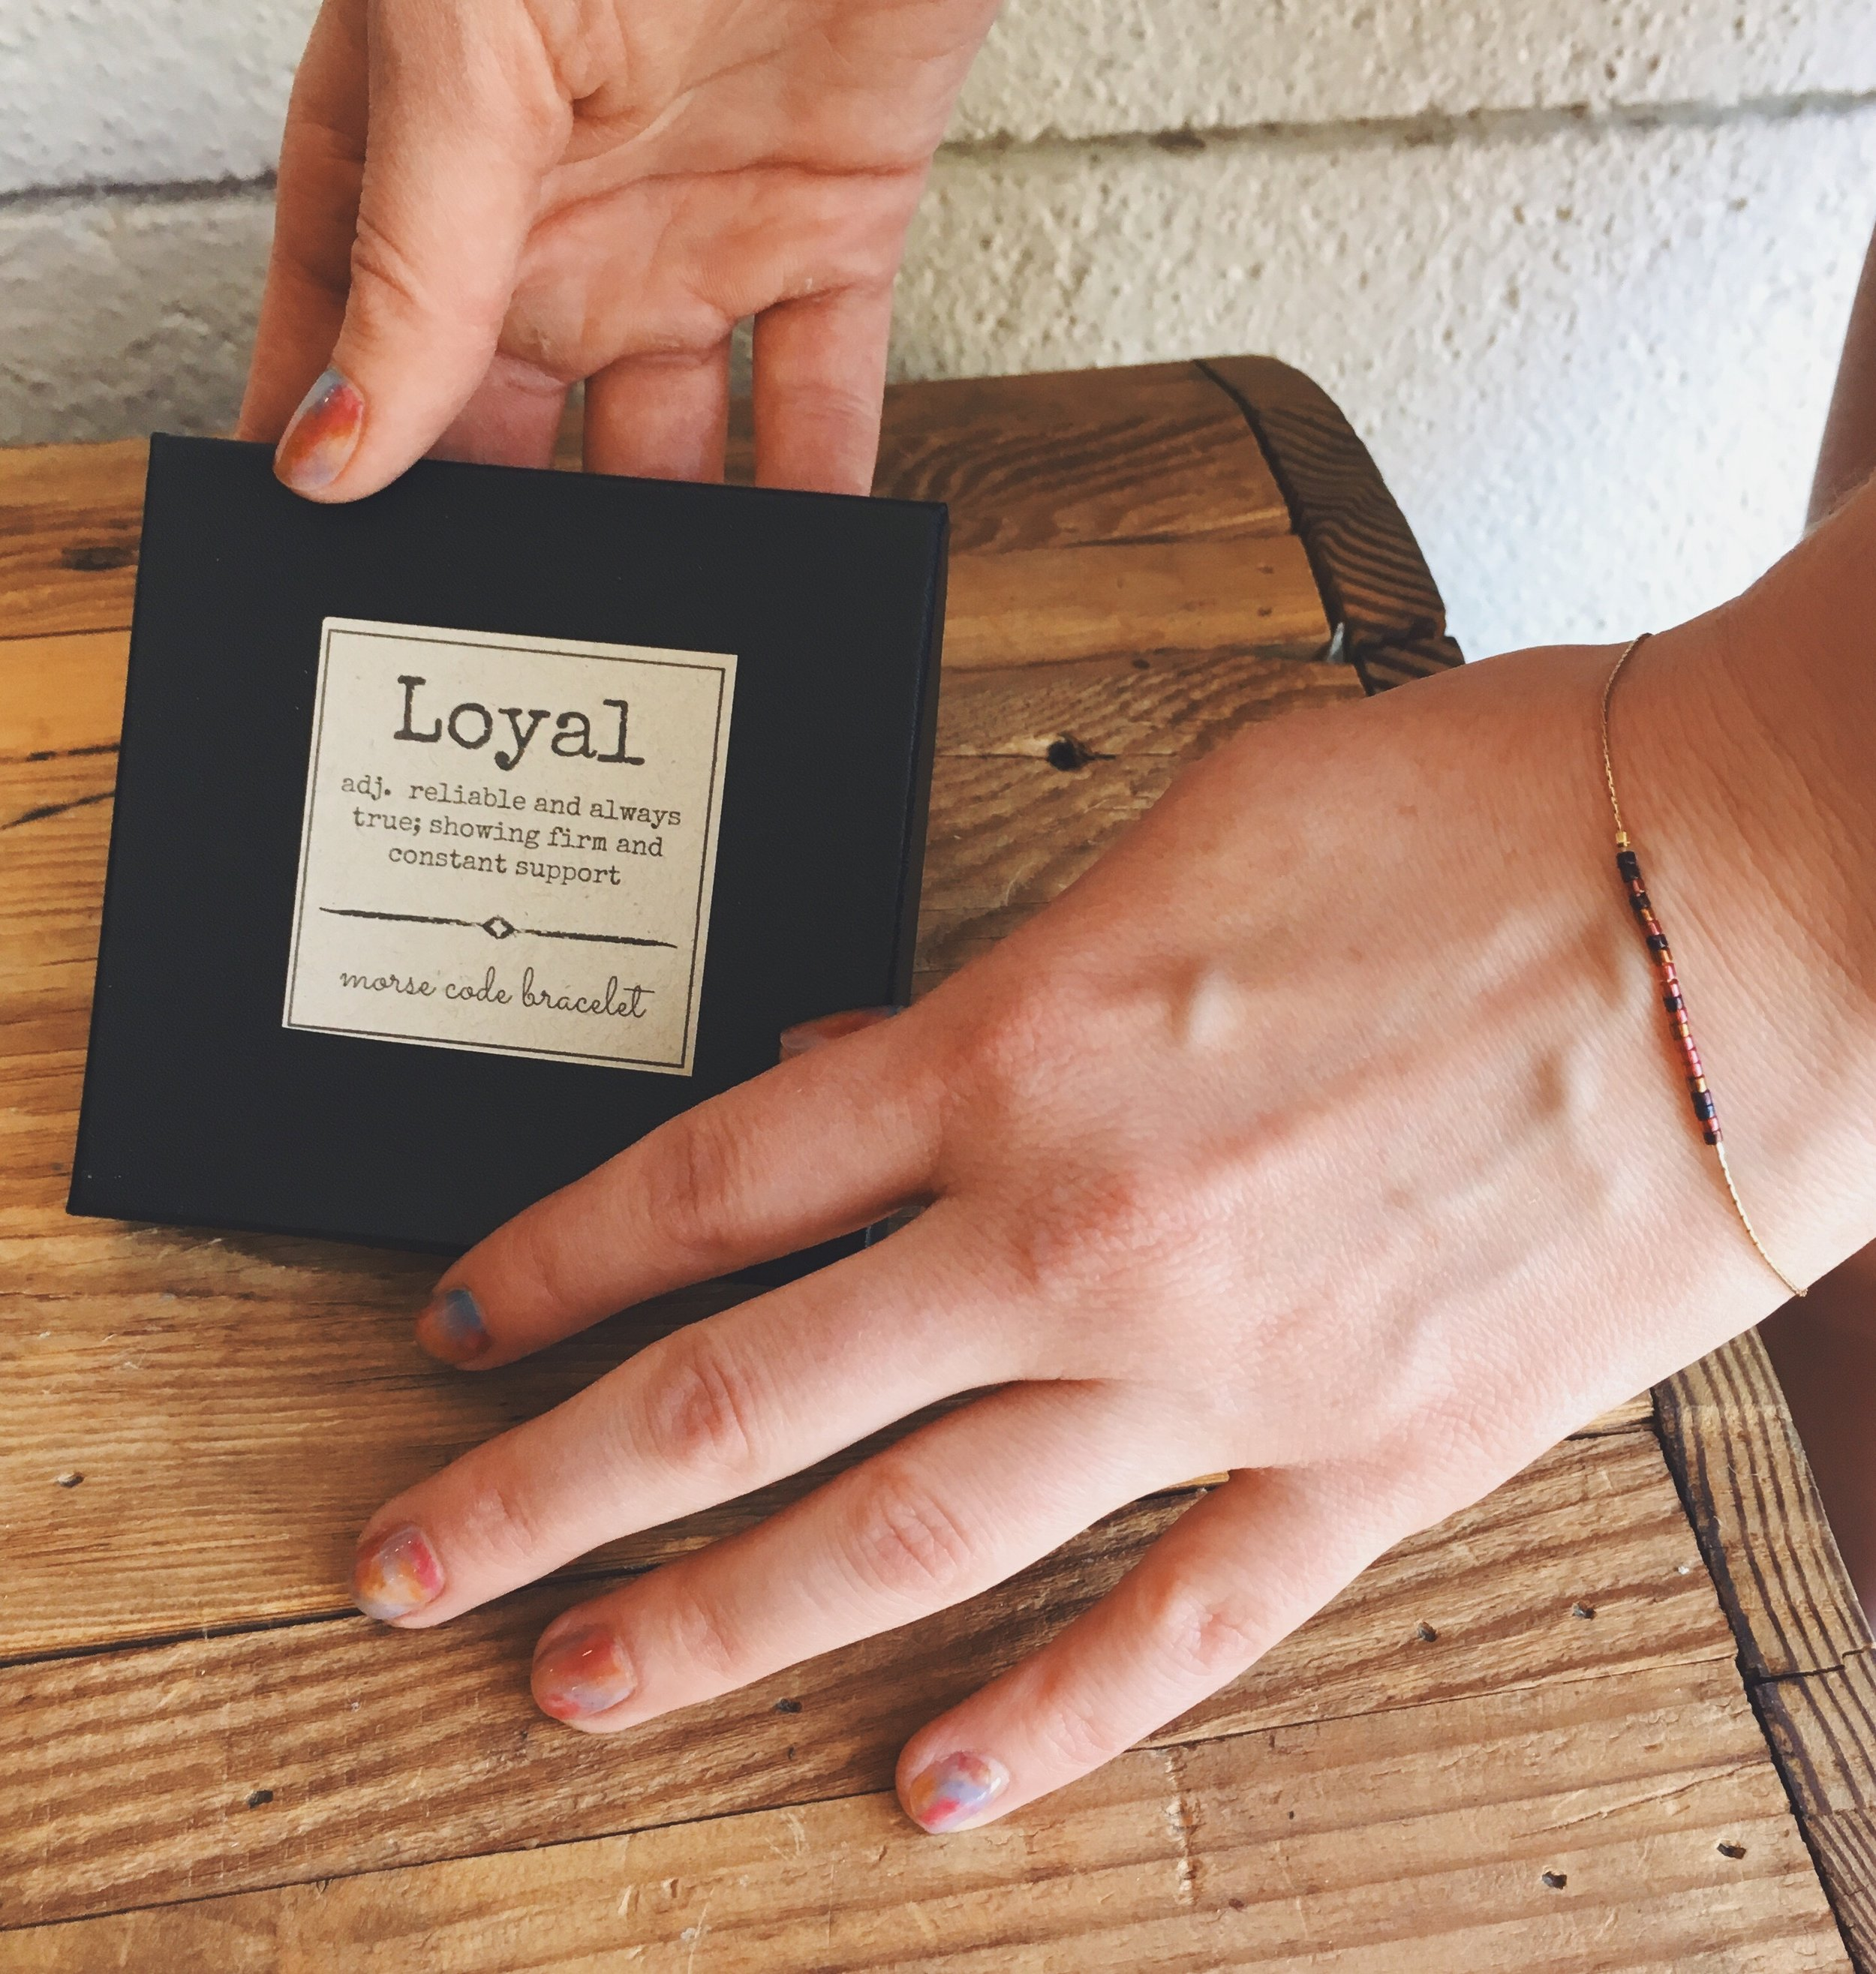 LOYAL Morse Code Bracelet; part of our 11-year commemorative collection